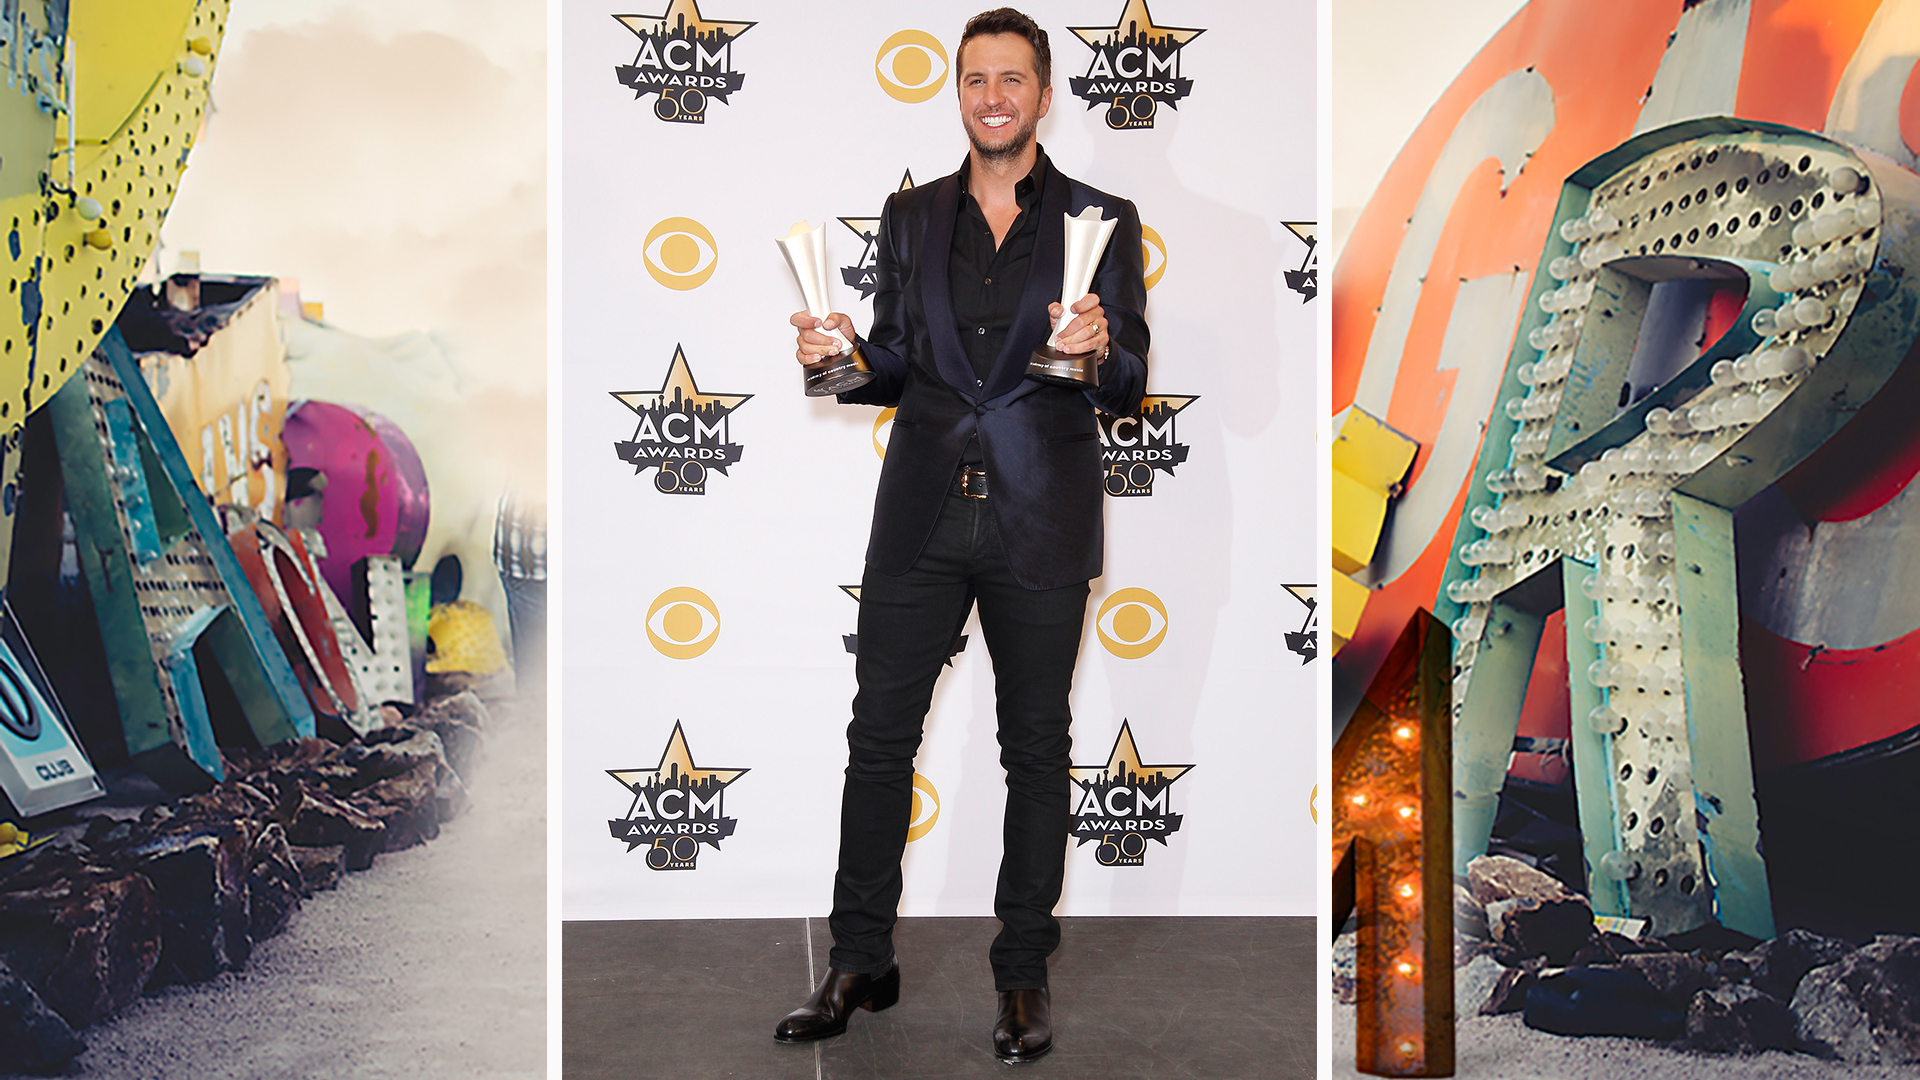 Luke Bryan dazzles alongside his shiny ACM Awards.